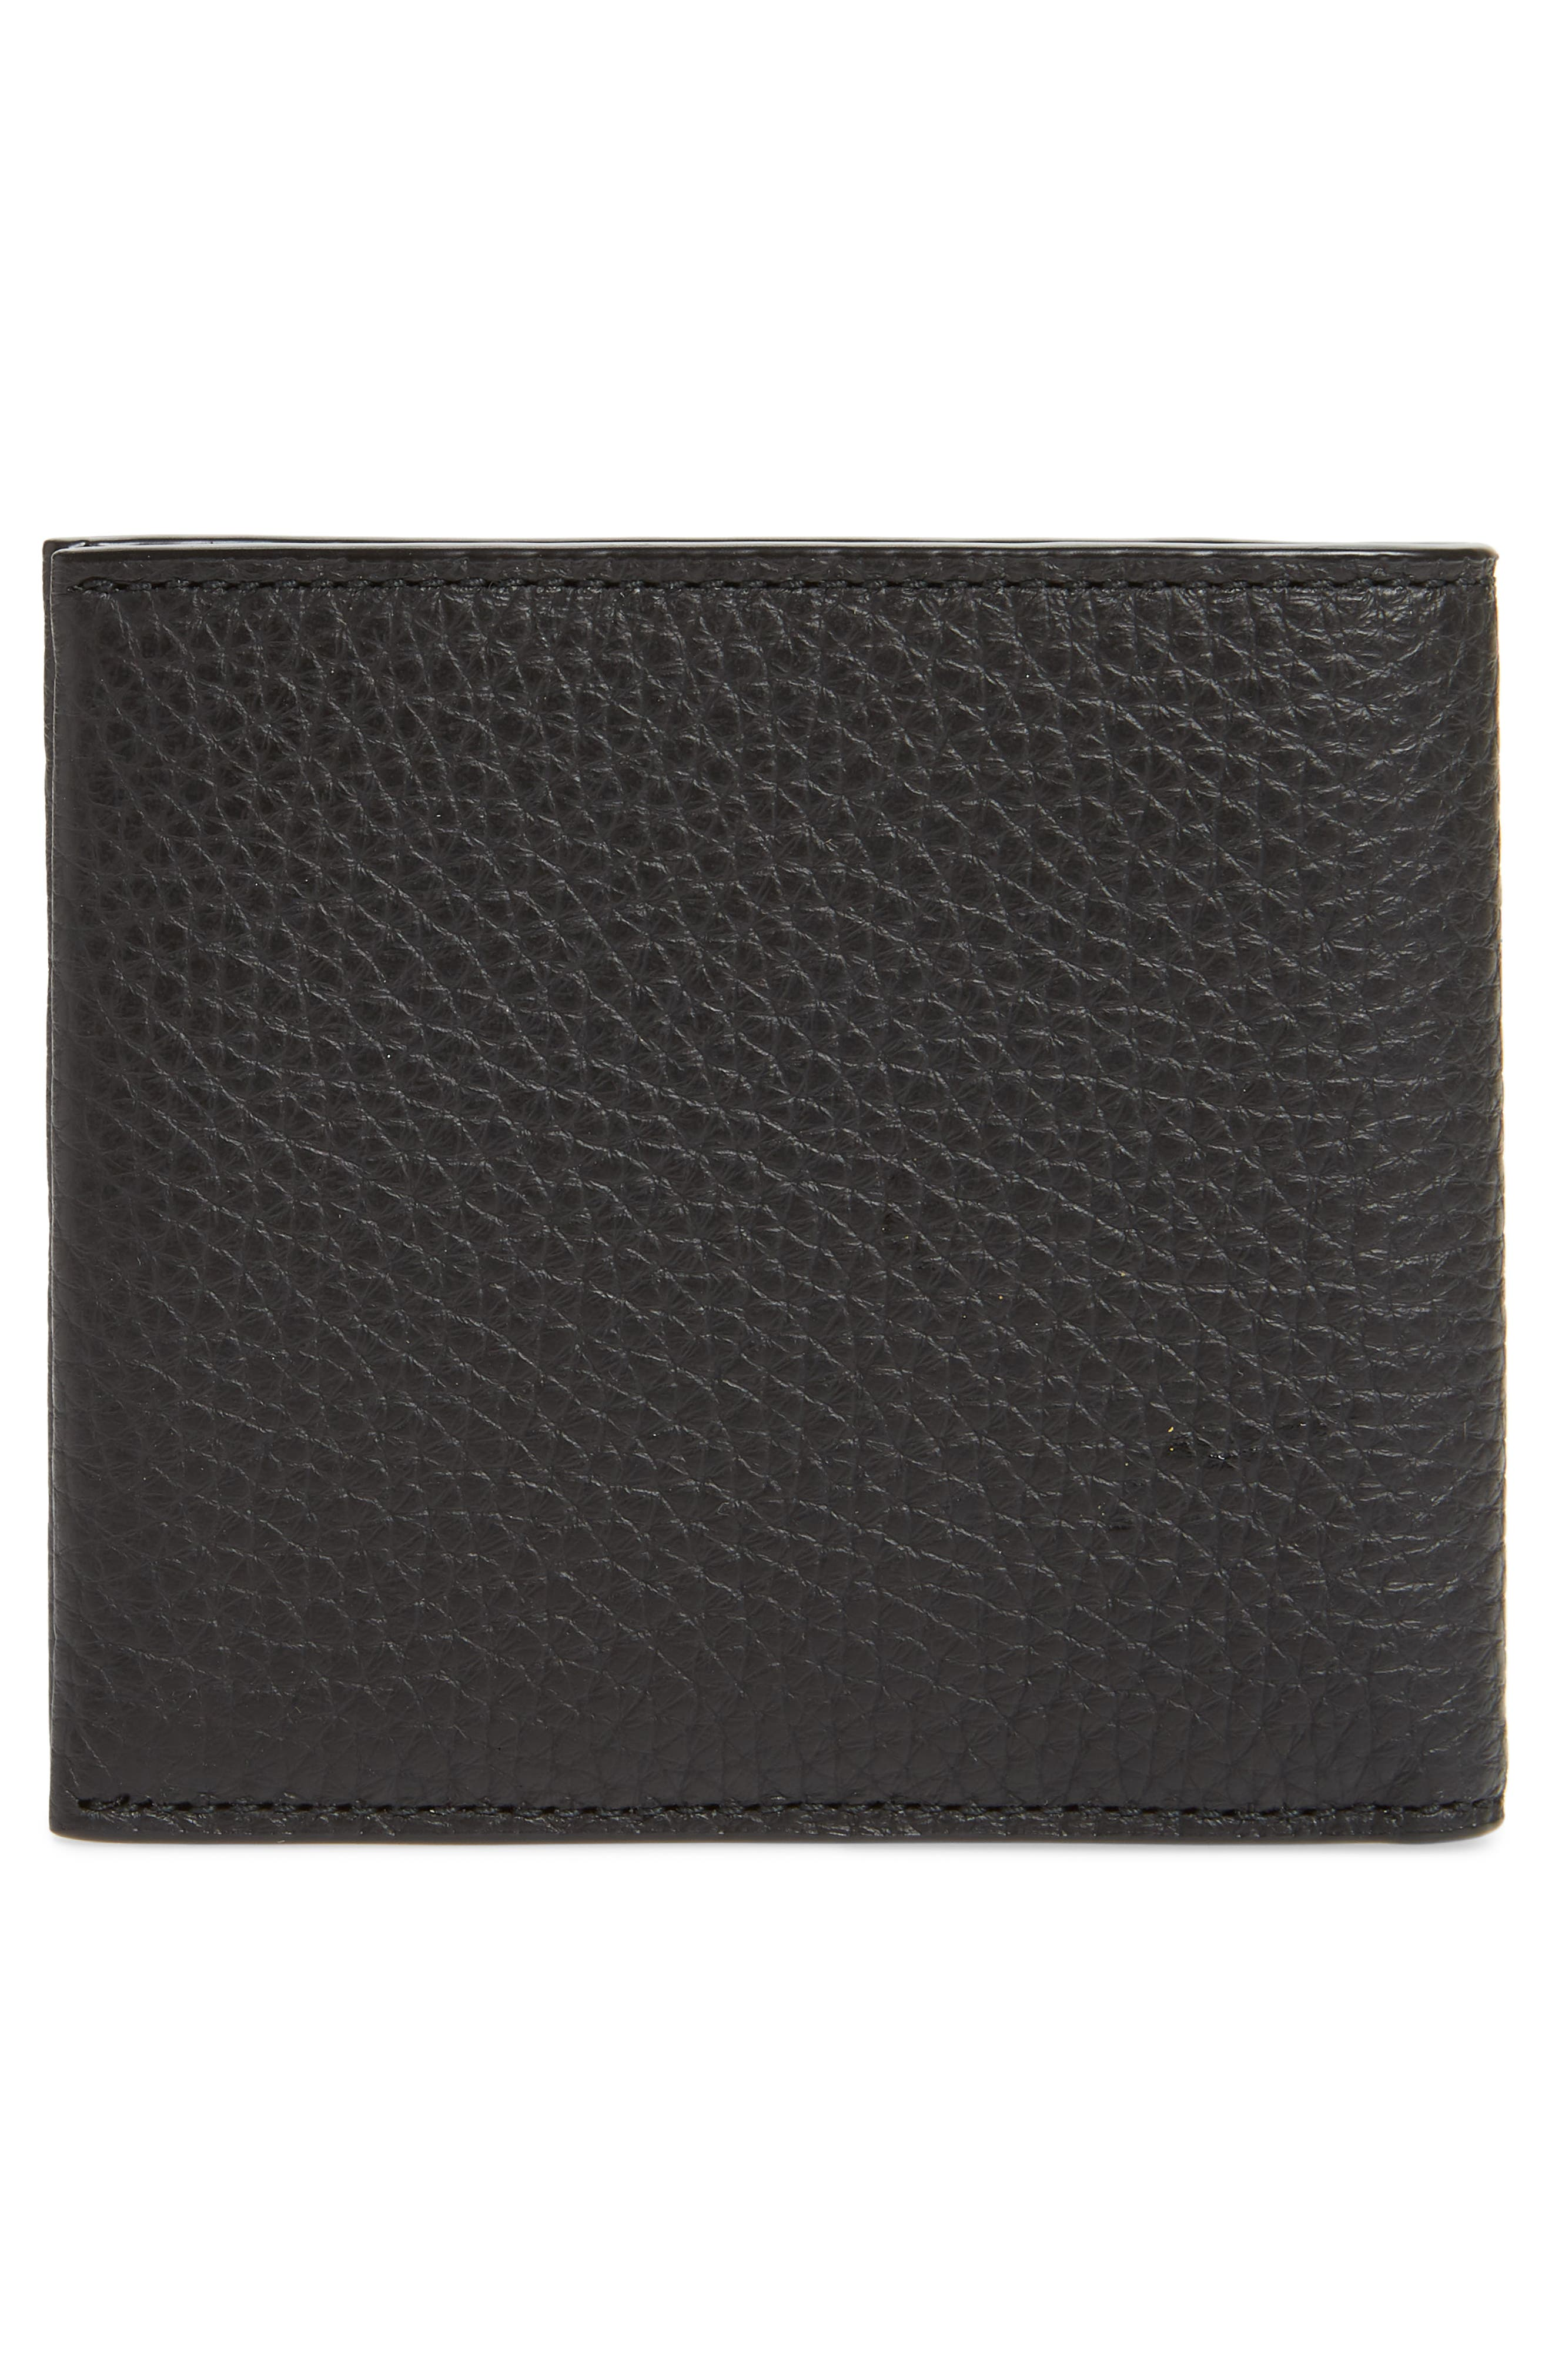 Crosstown 8-Card Leather Wallet,                             Alternate thumbnail 3, color,                             BLACK